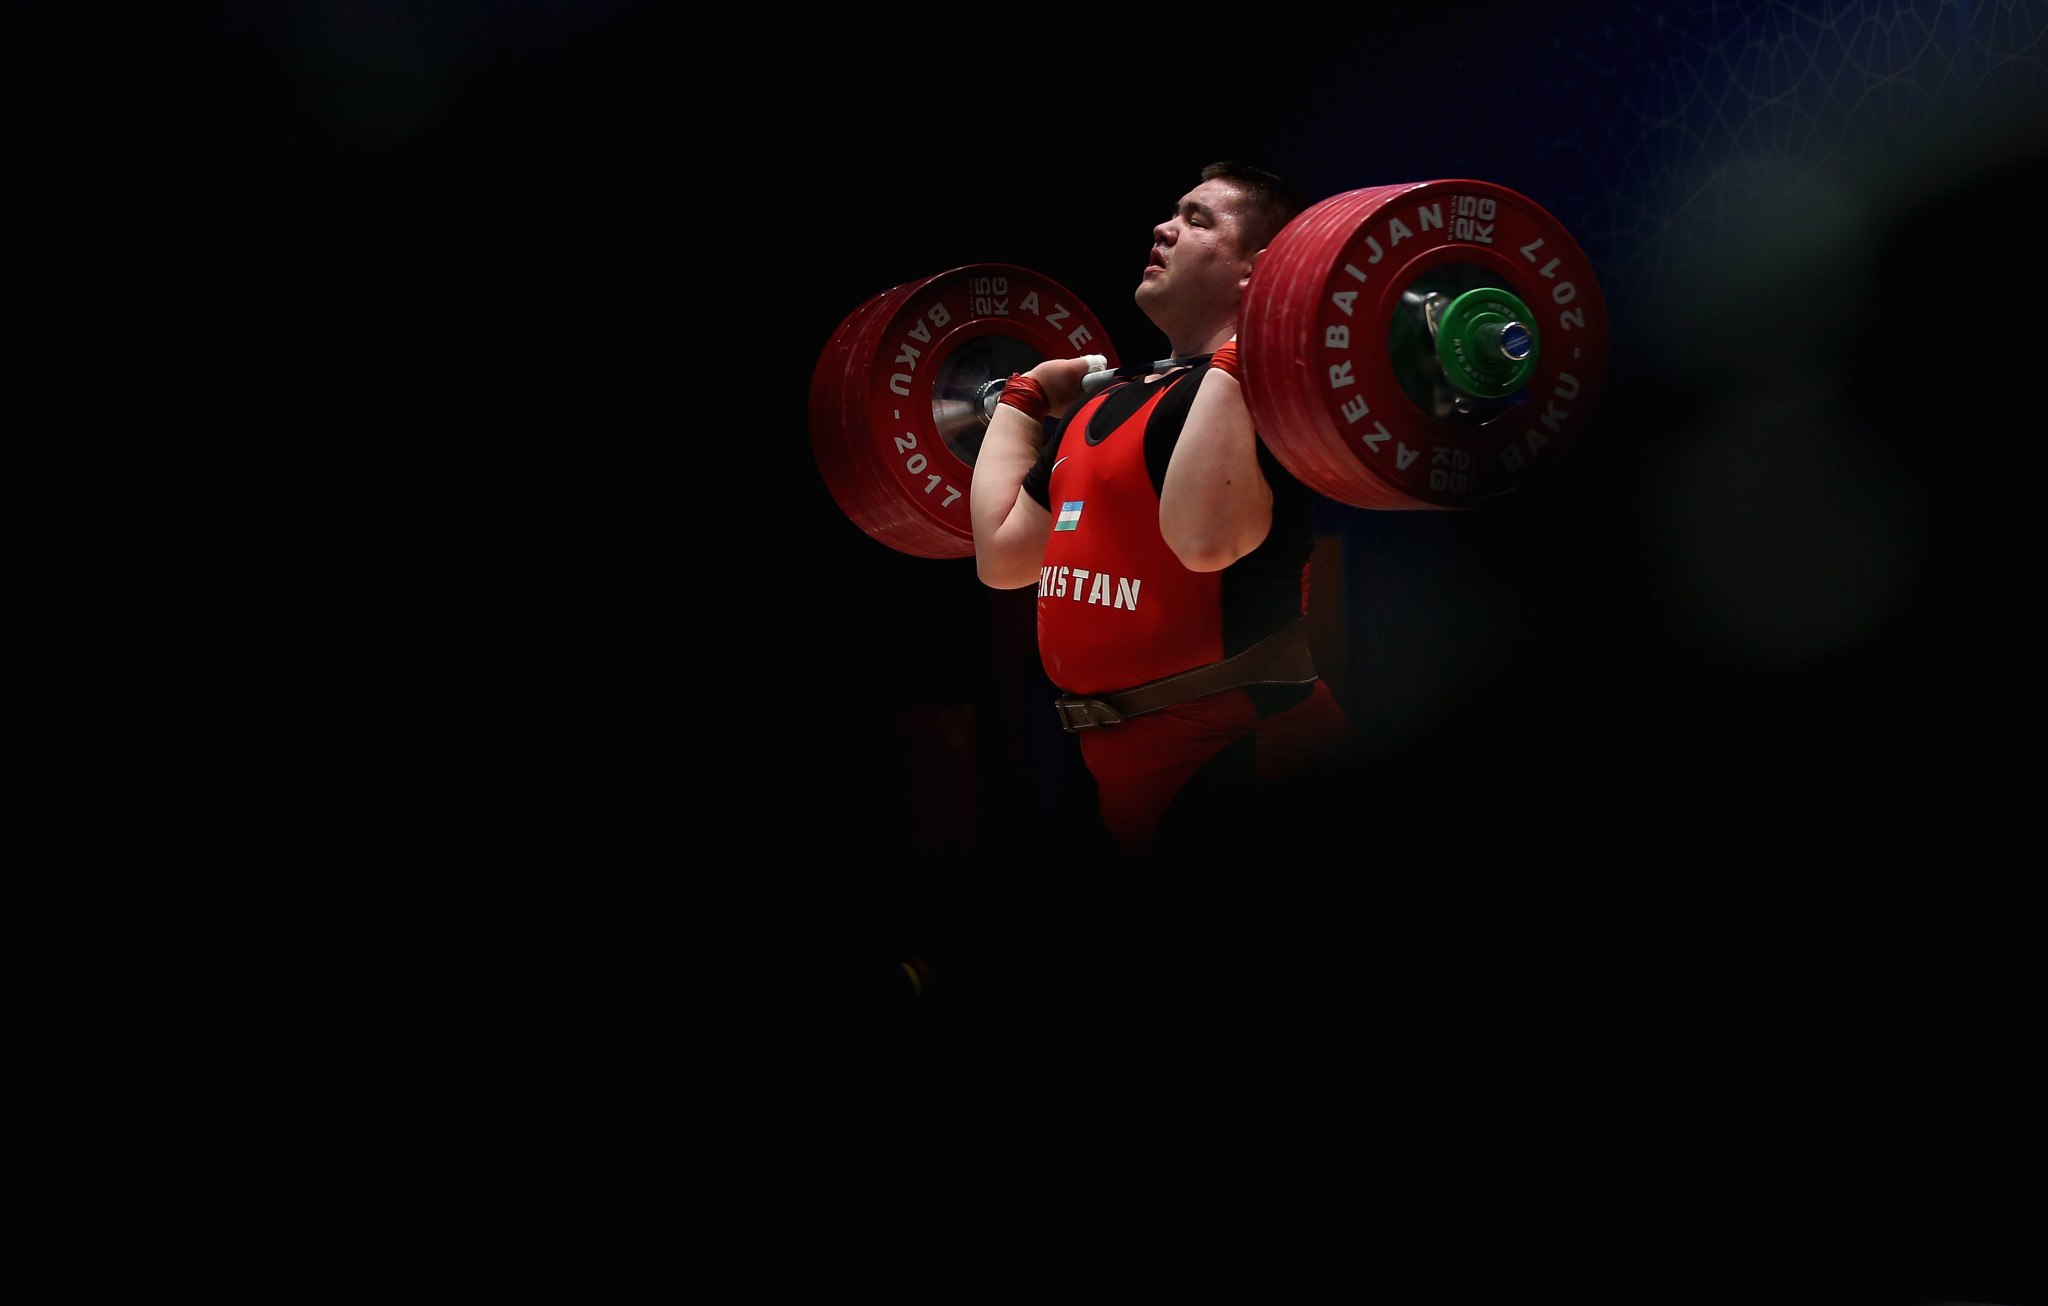 Rustam Djangabaev did not deny the anti-doping charge and accepted a four-year suspension